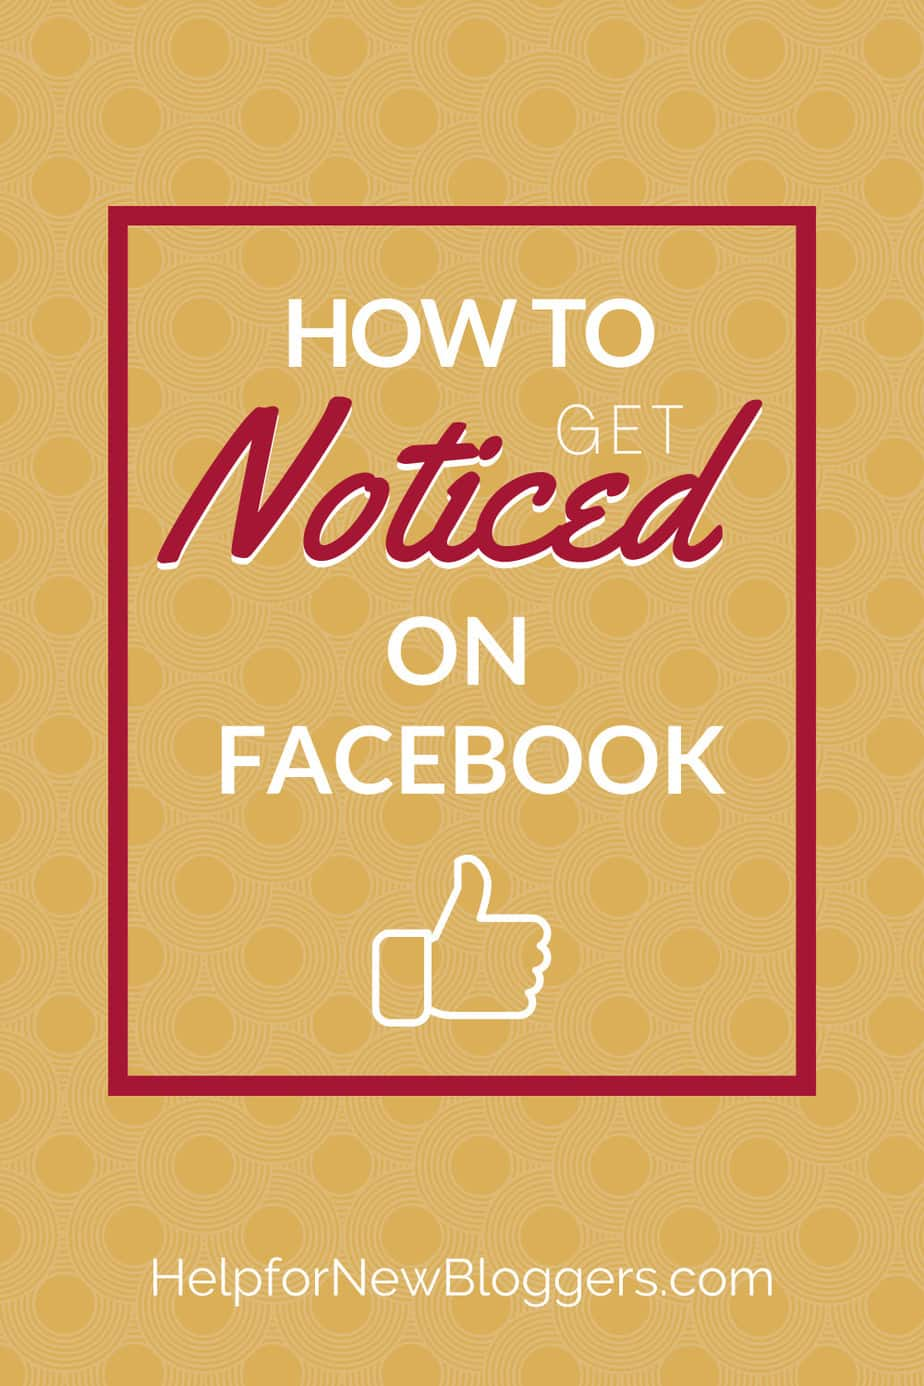 How to get noticed on Facebook